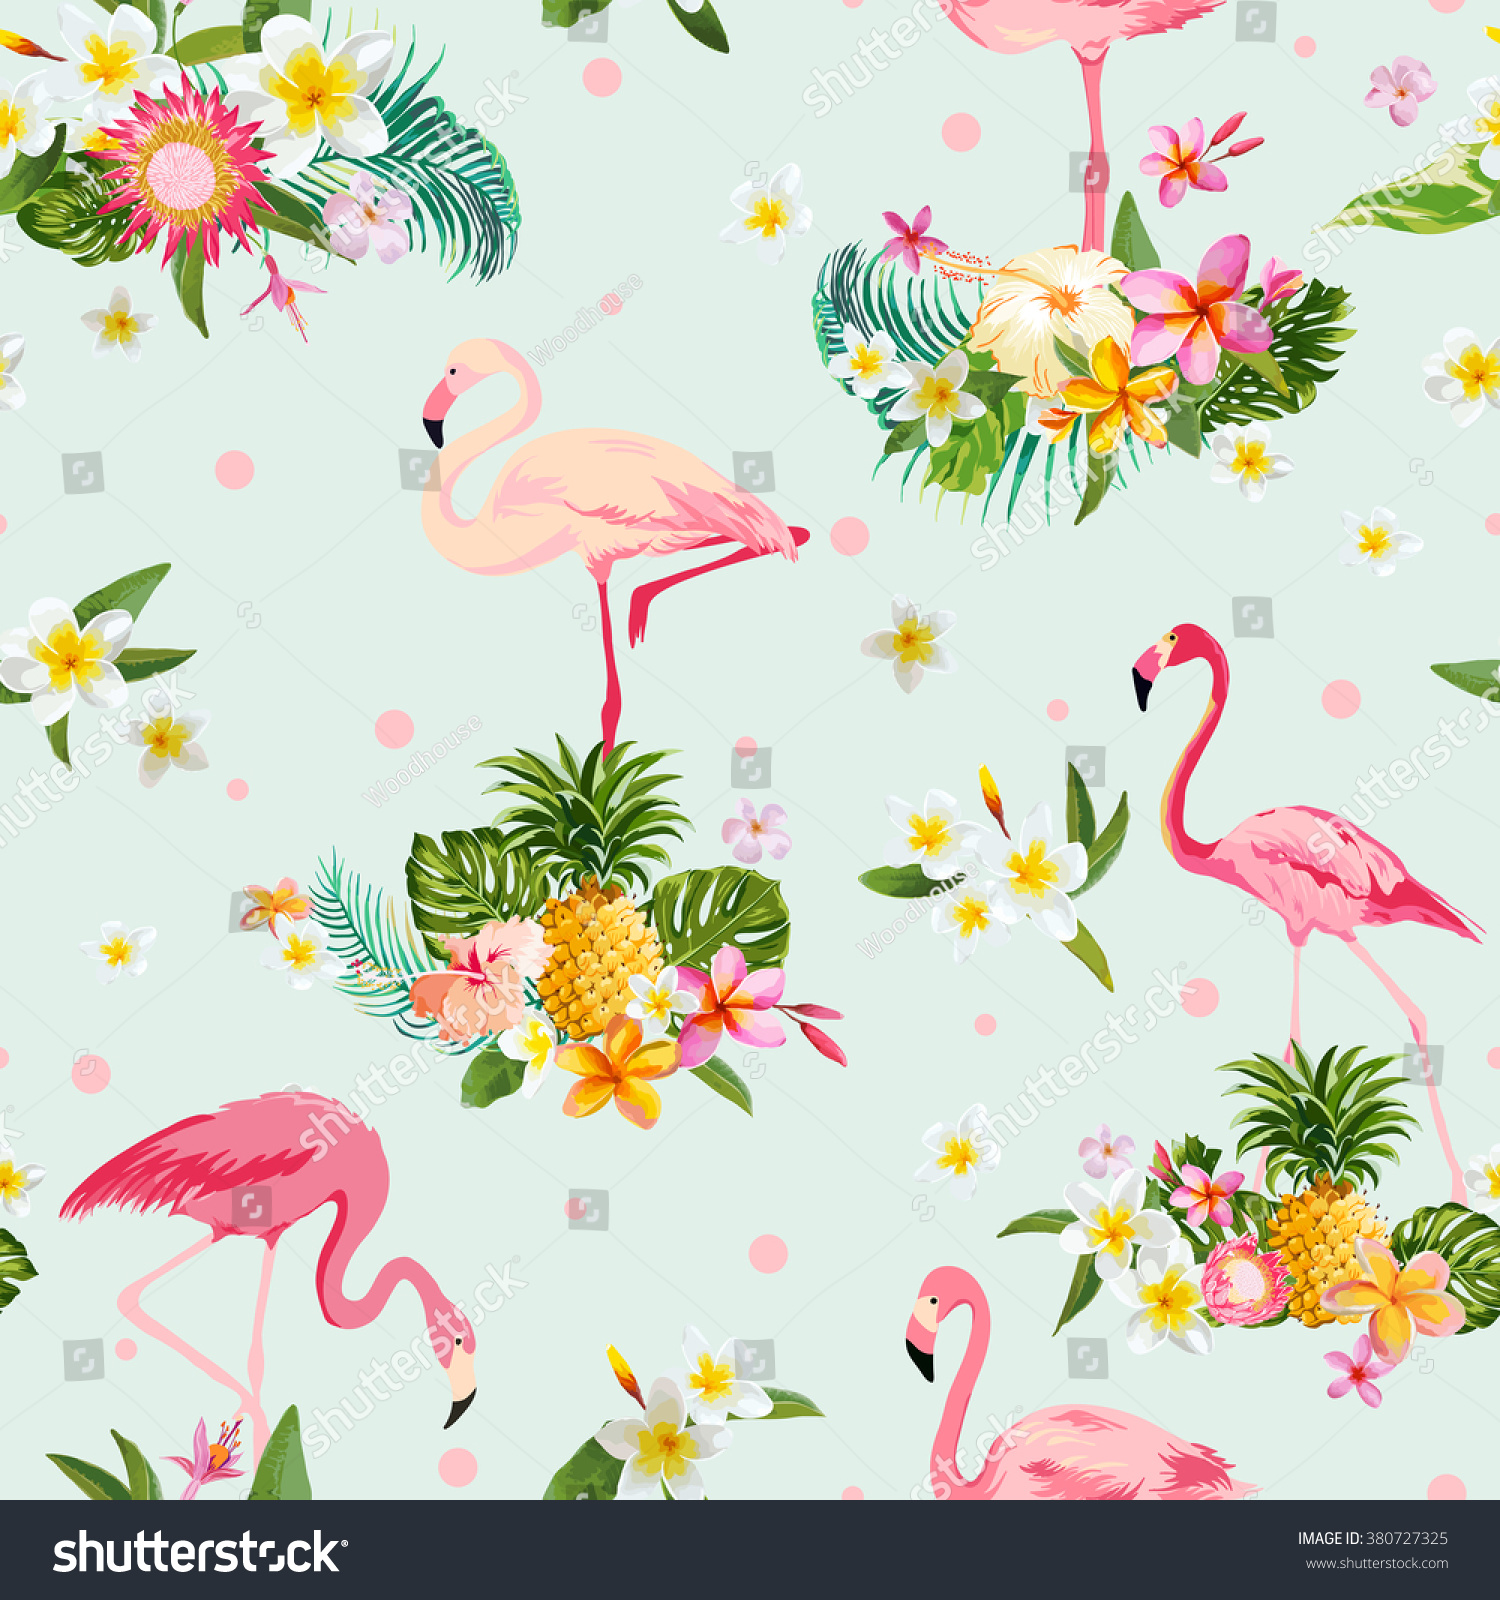 Vintage Style Tropical Bird And Flowers Background: Flamingo Bird Tropical Flowers Background Retro Stock